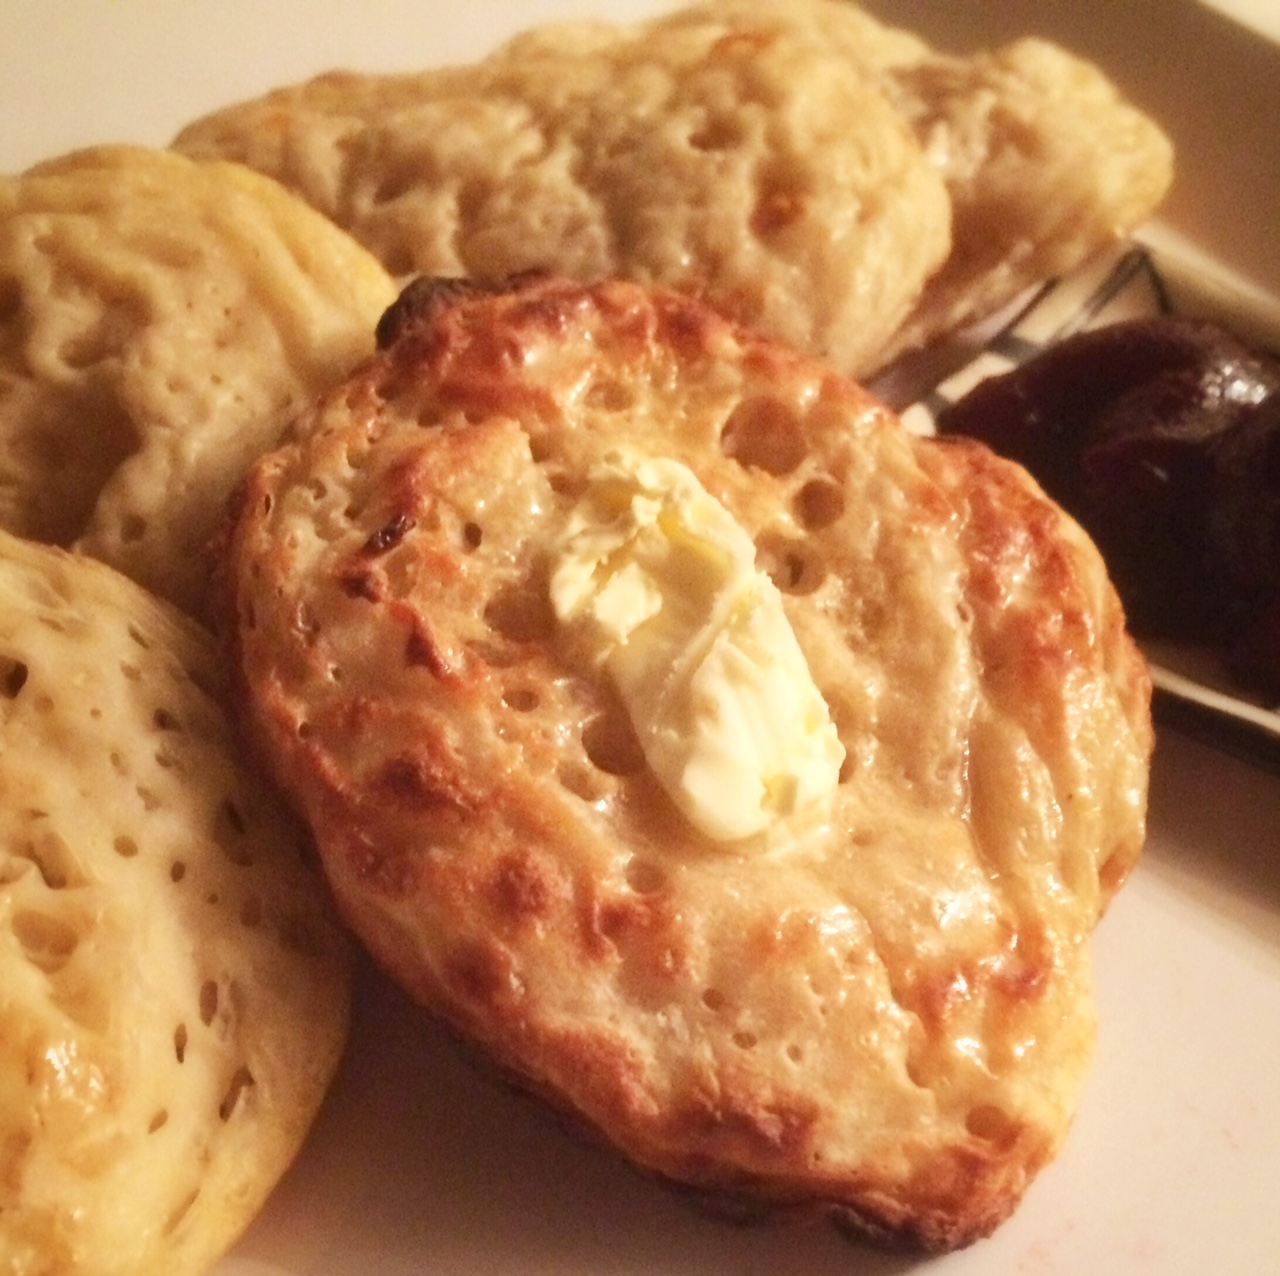 These crumpets are good enough for a Jane Austen character